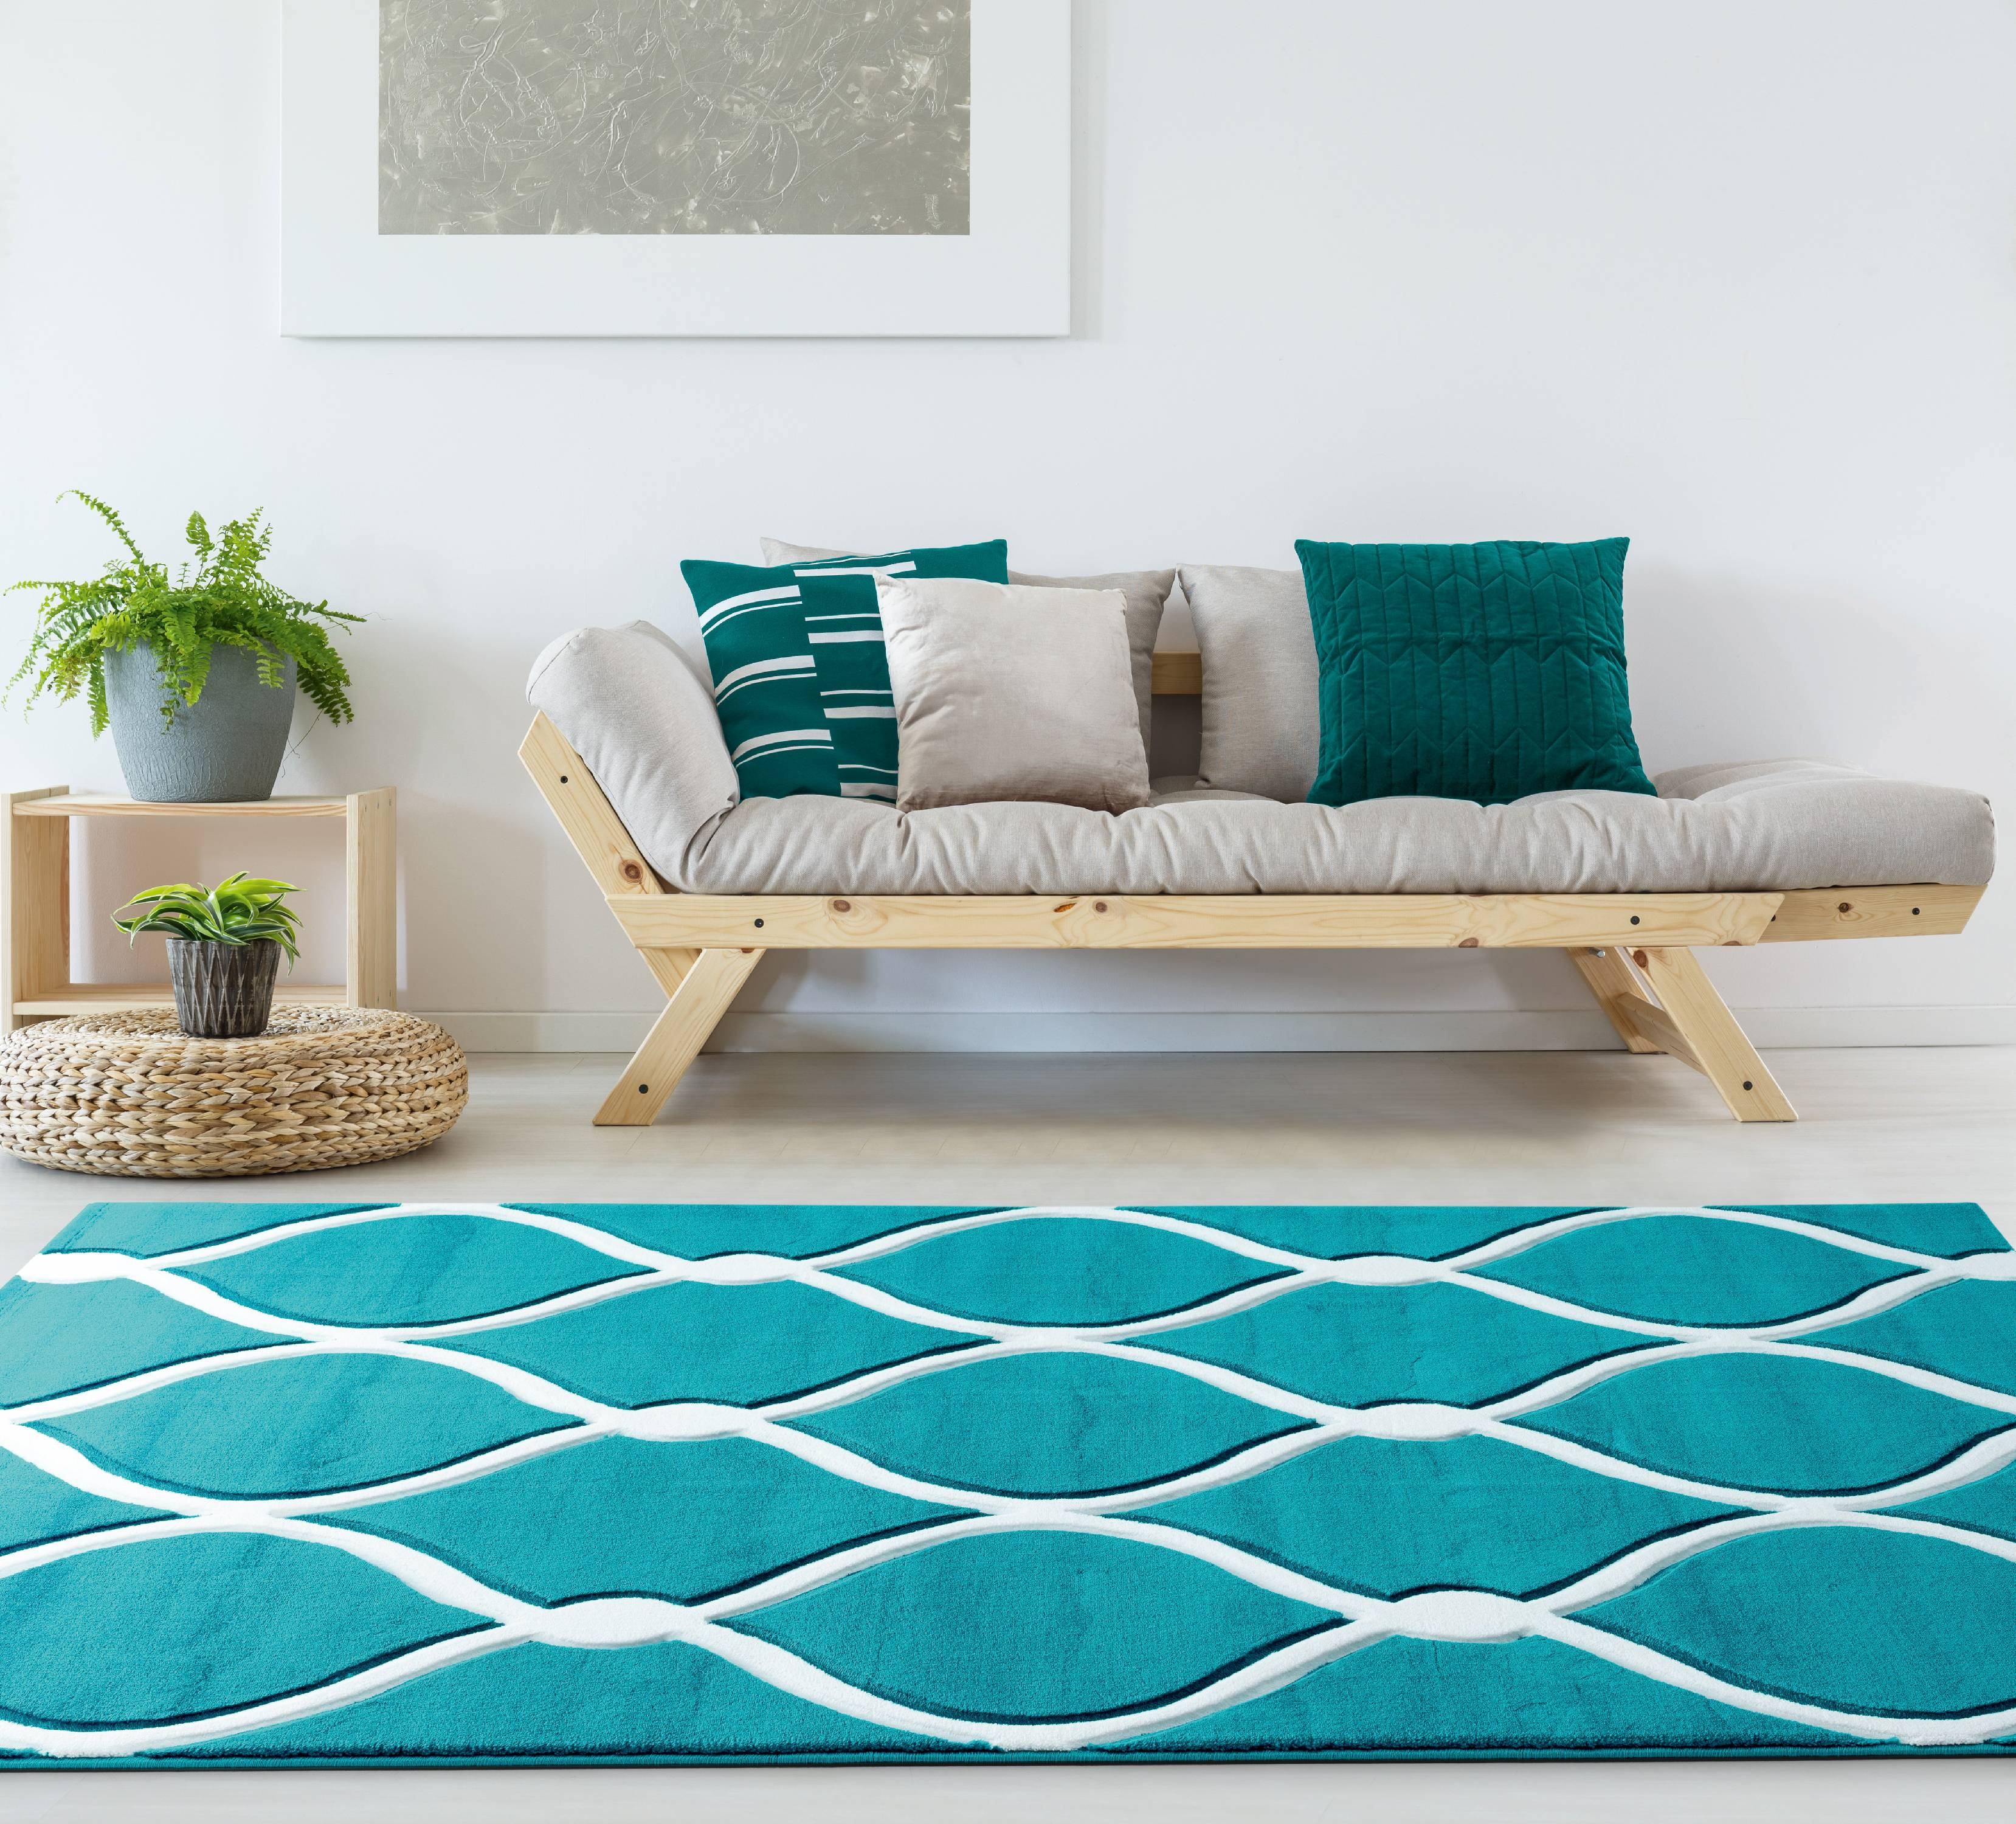 United Weavers Drachma Freya Geometric Turquoise Woven Olefin/Polypropylene Area Rug or Runner